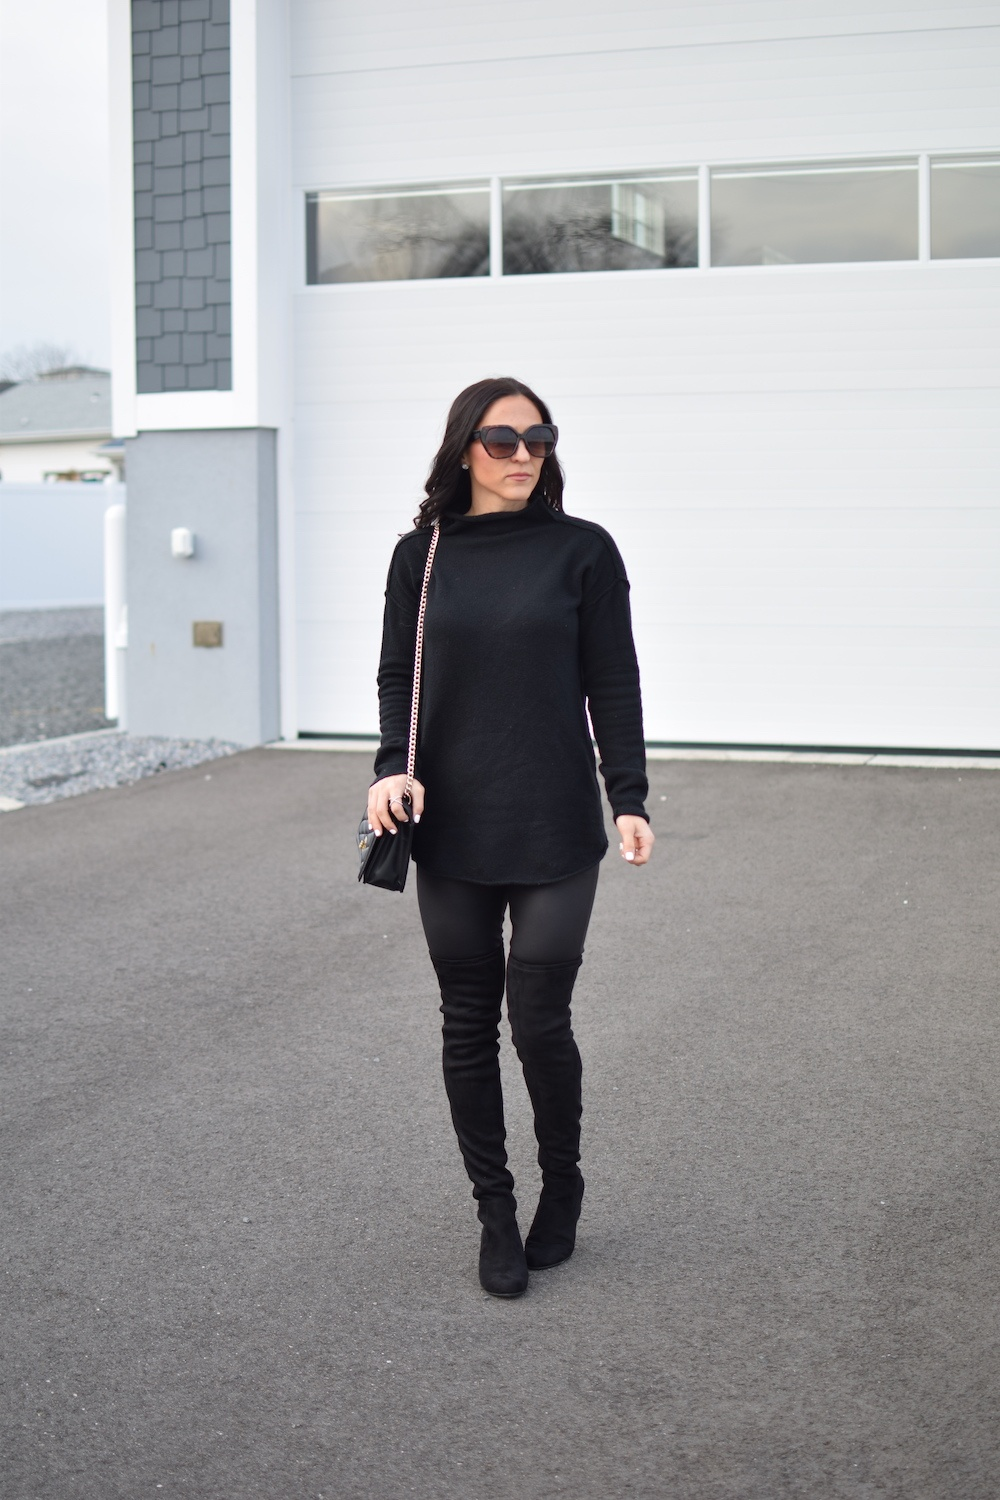 black sweater - How To Style Faux Leather Leggings by popular New Jersey fashion blogger Fit Mommy in Heels